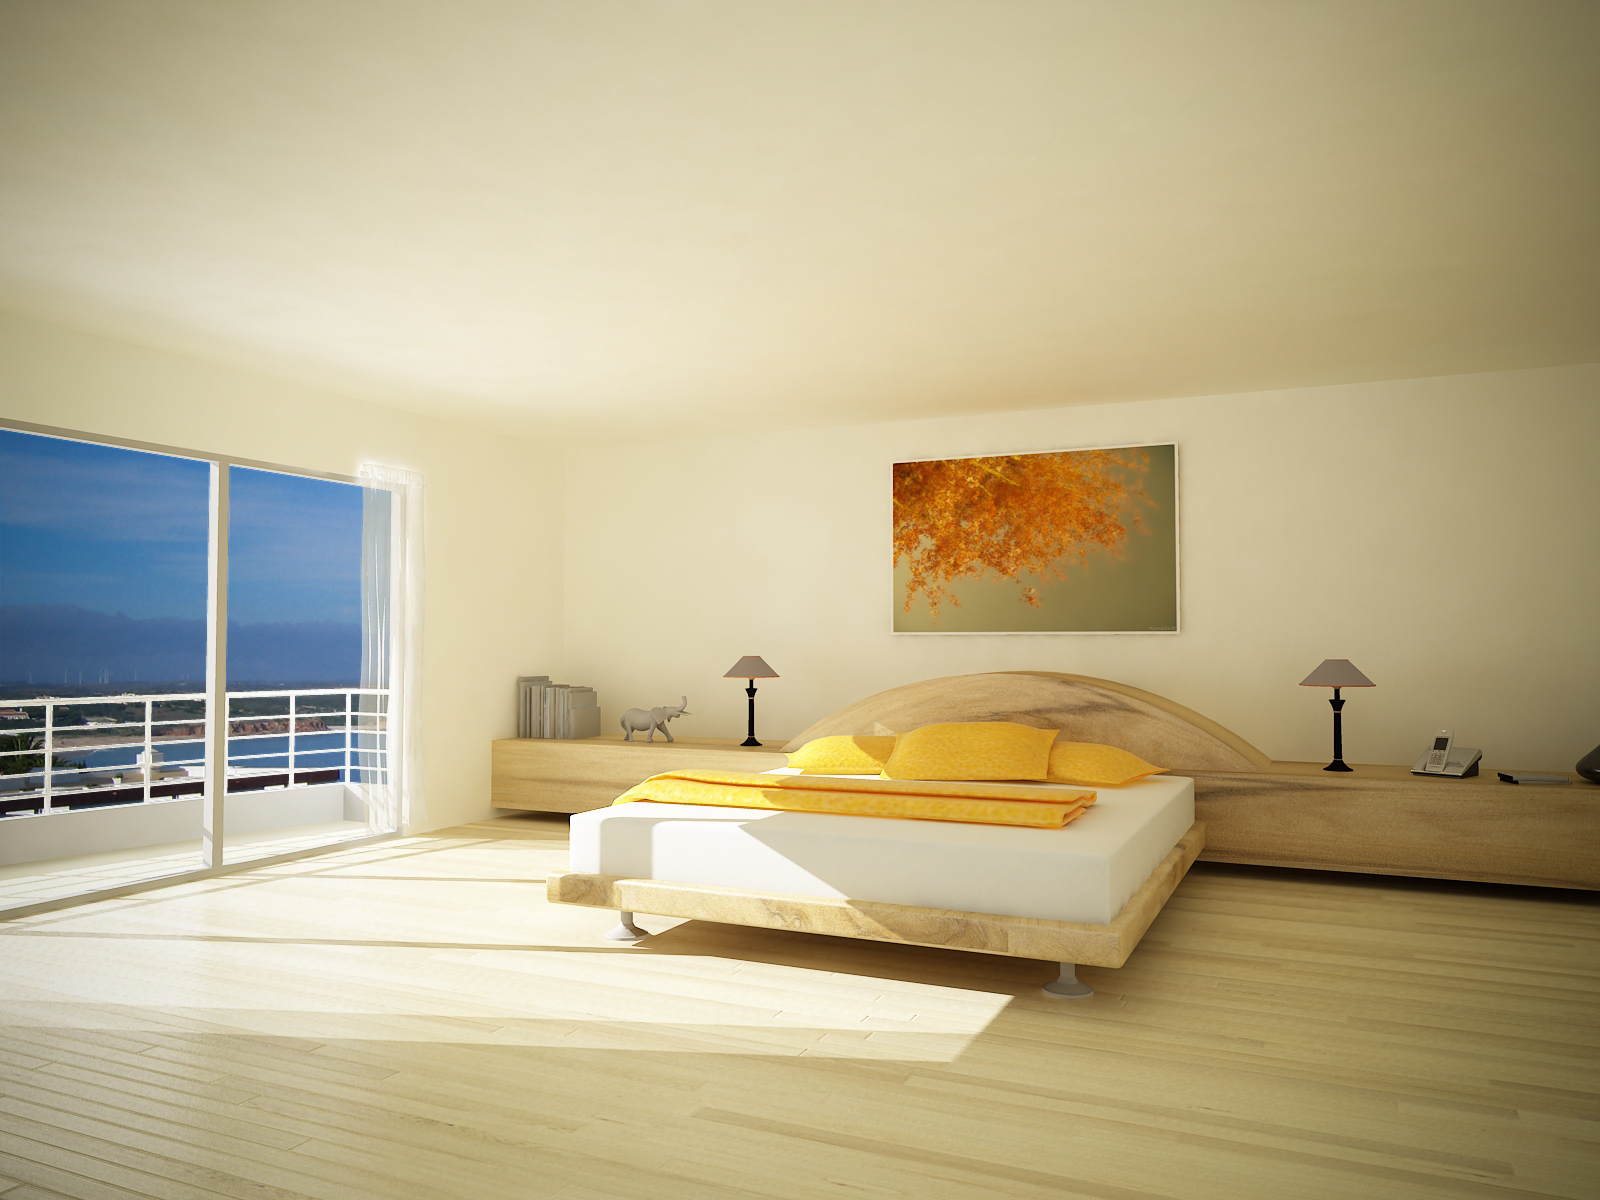 Incredible Minimalist Bedroom Design 1600 x 1200 · 969 kB · jpeg